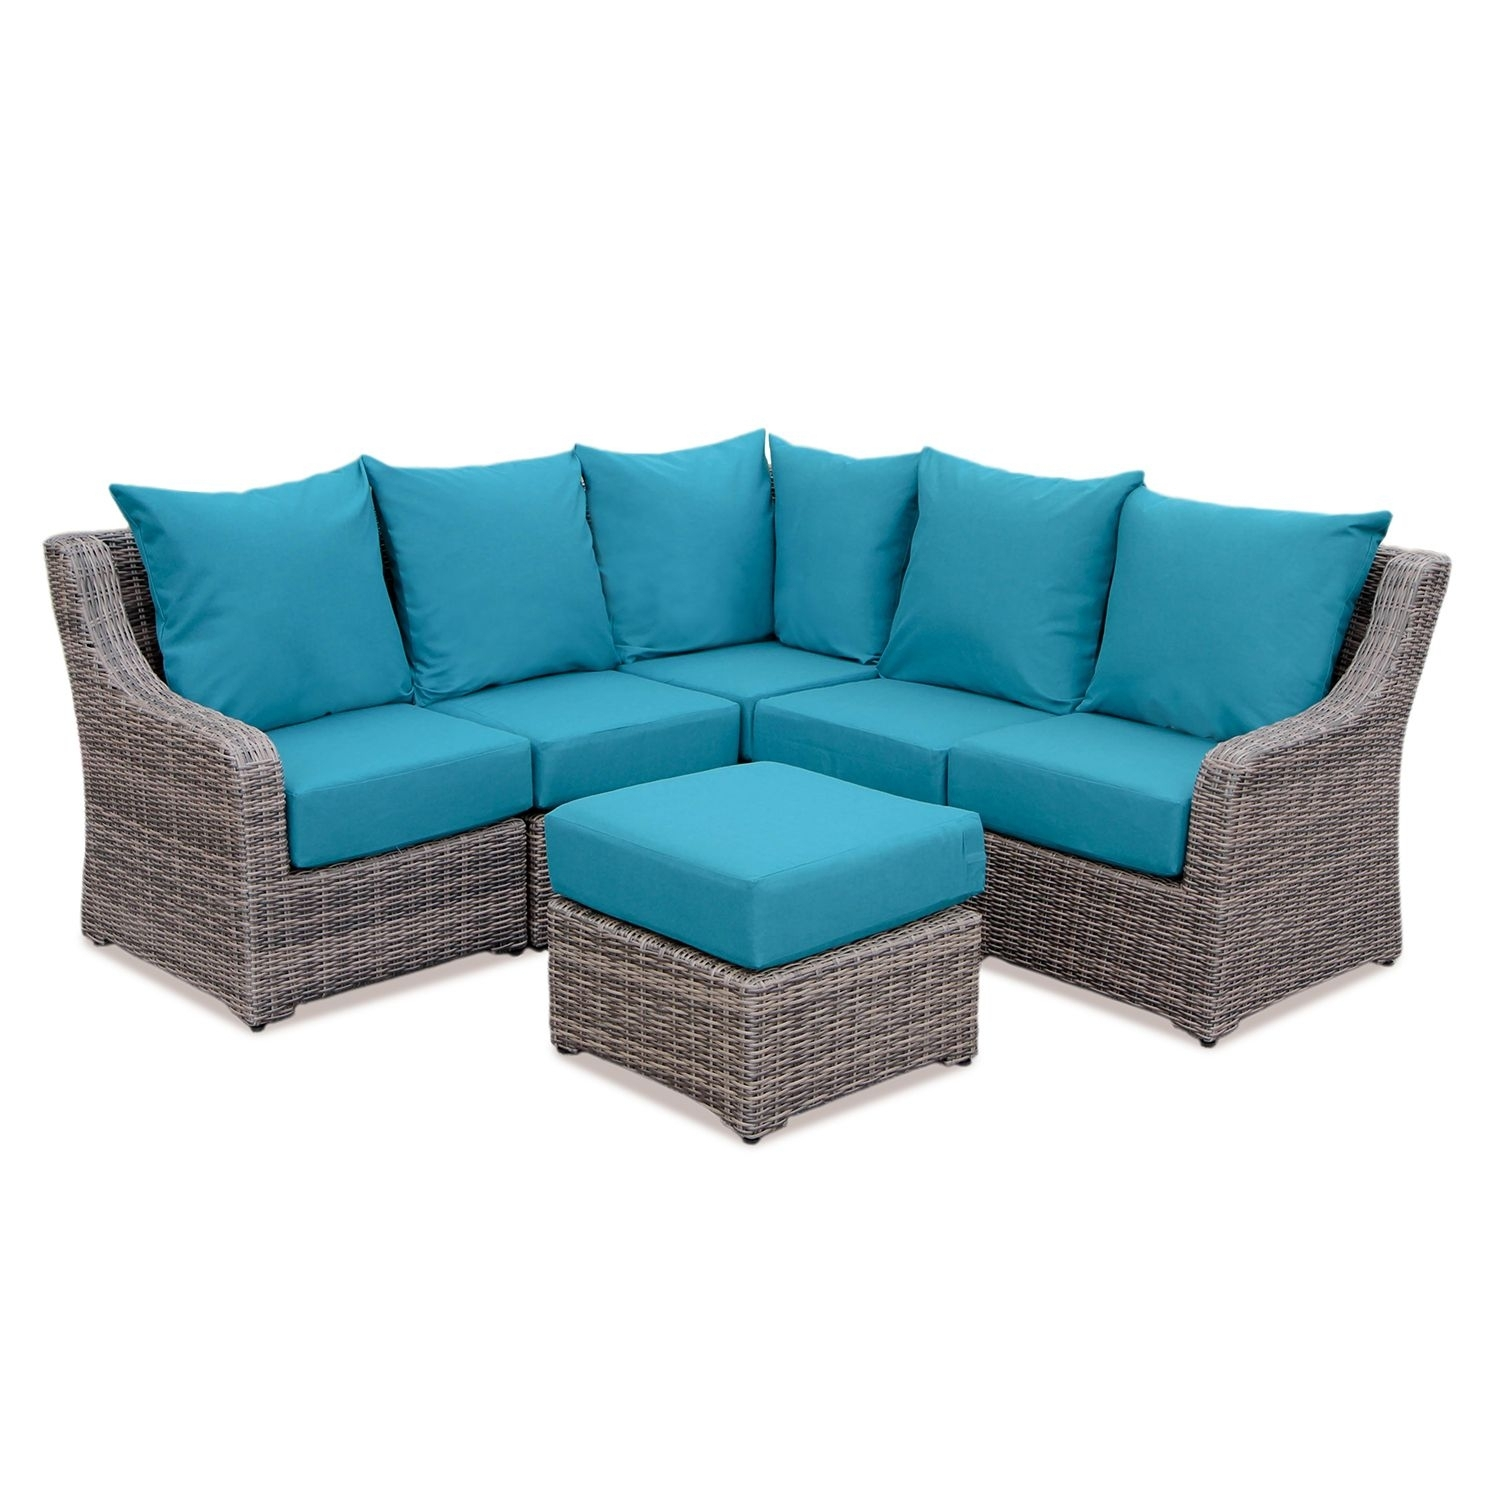 Cedar Grove 6-Piece Sectional With Sunbrella Fabric And Multiple within Sectional Sofas At Sam's Club (Image 6 of 15)